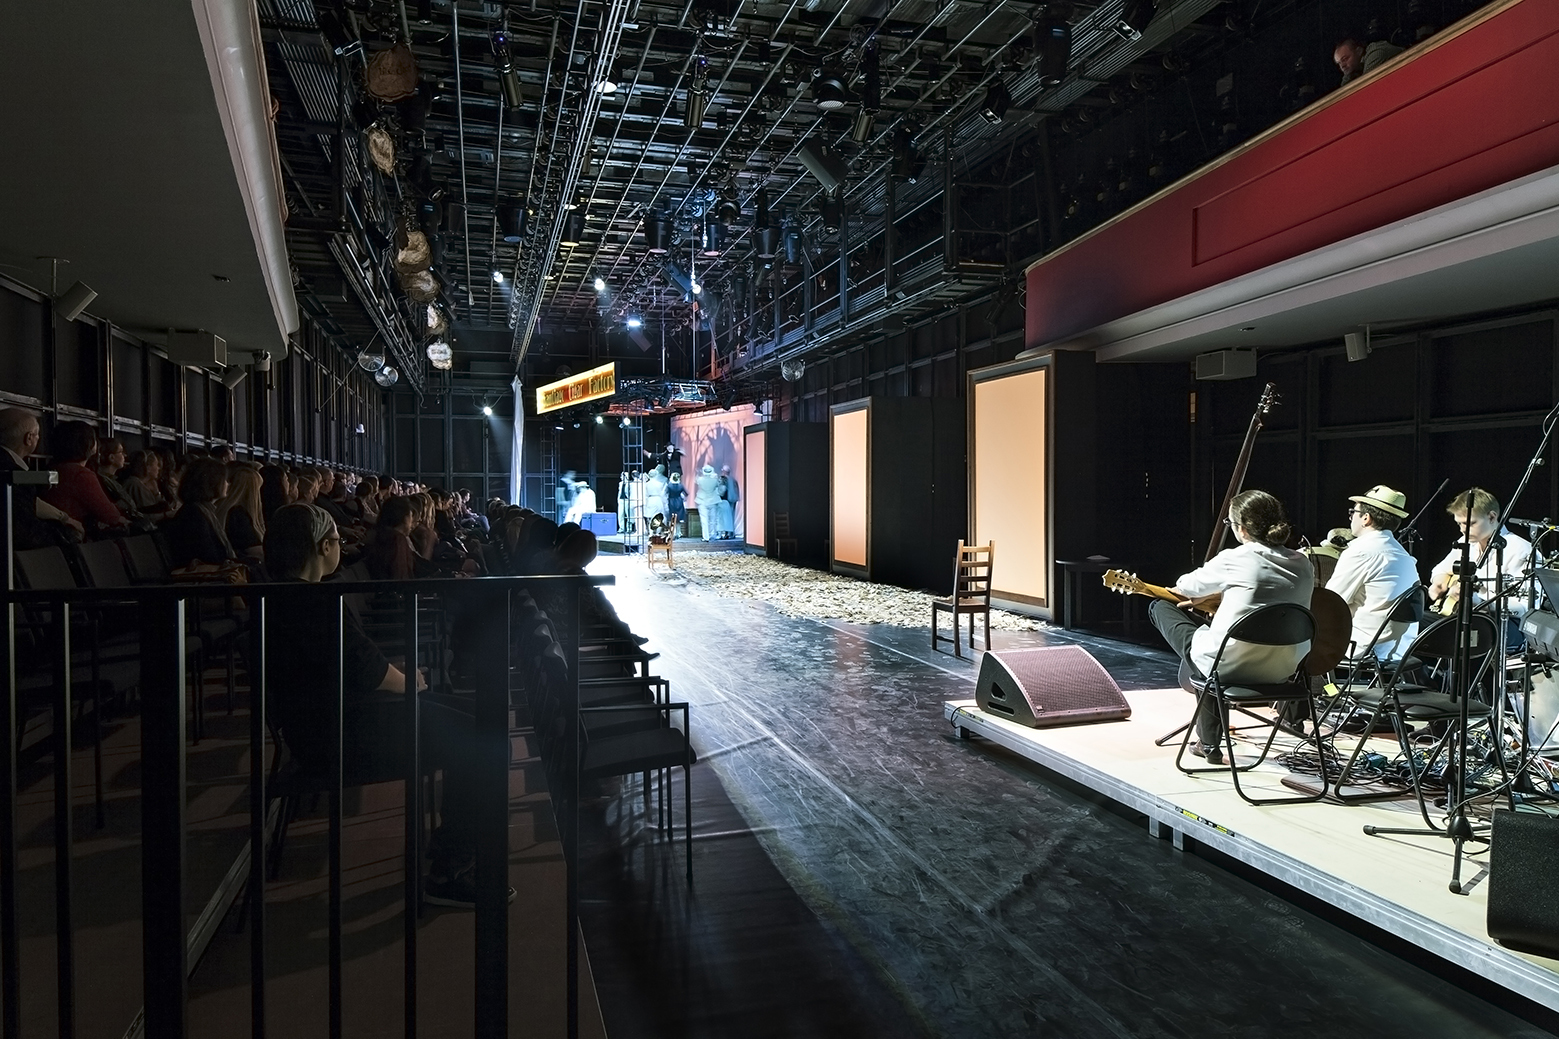 Stanislavsky Electrotheatre / Wowhaus